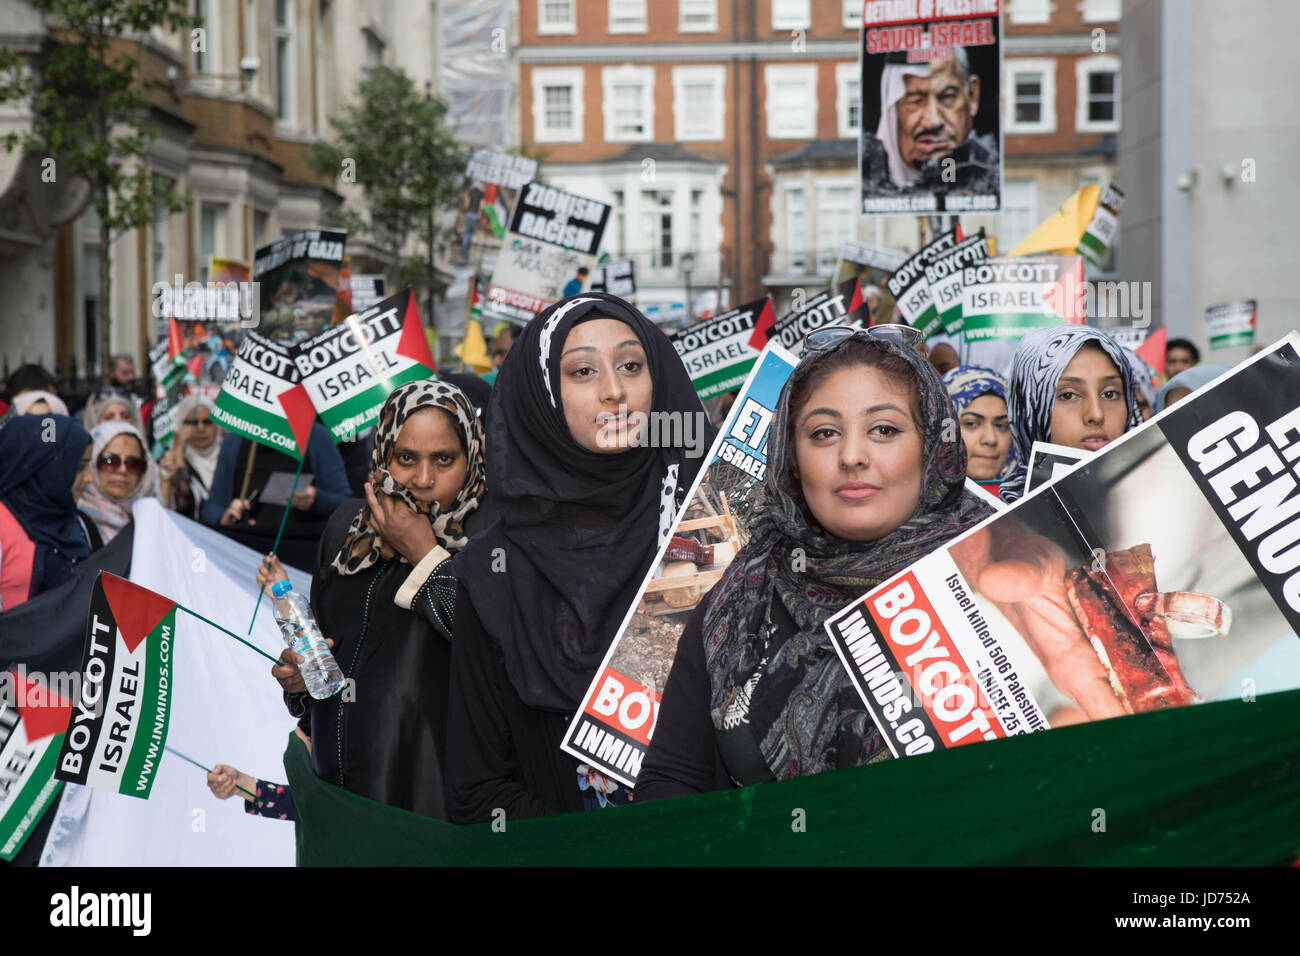 Al Quds day 2017 London, UK. 18th June, 2017. women holding placards at the start of the march Credit: Brian Southam/Alamy - Stock Image